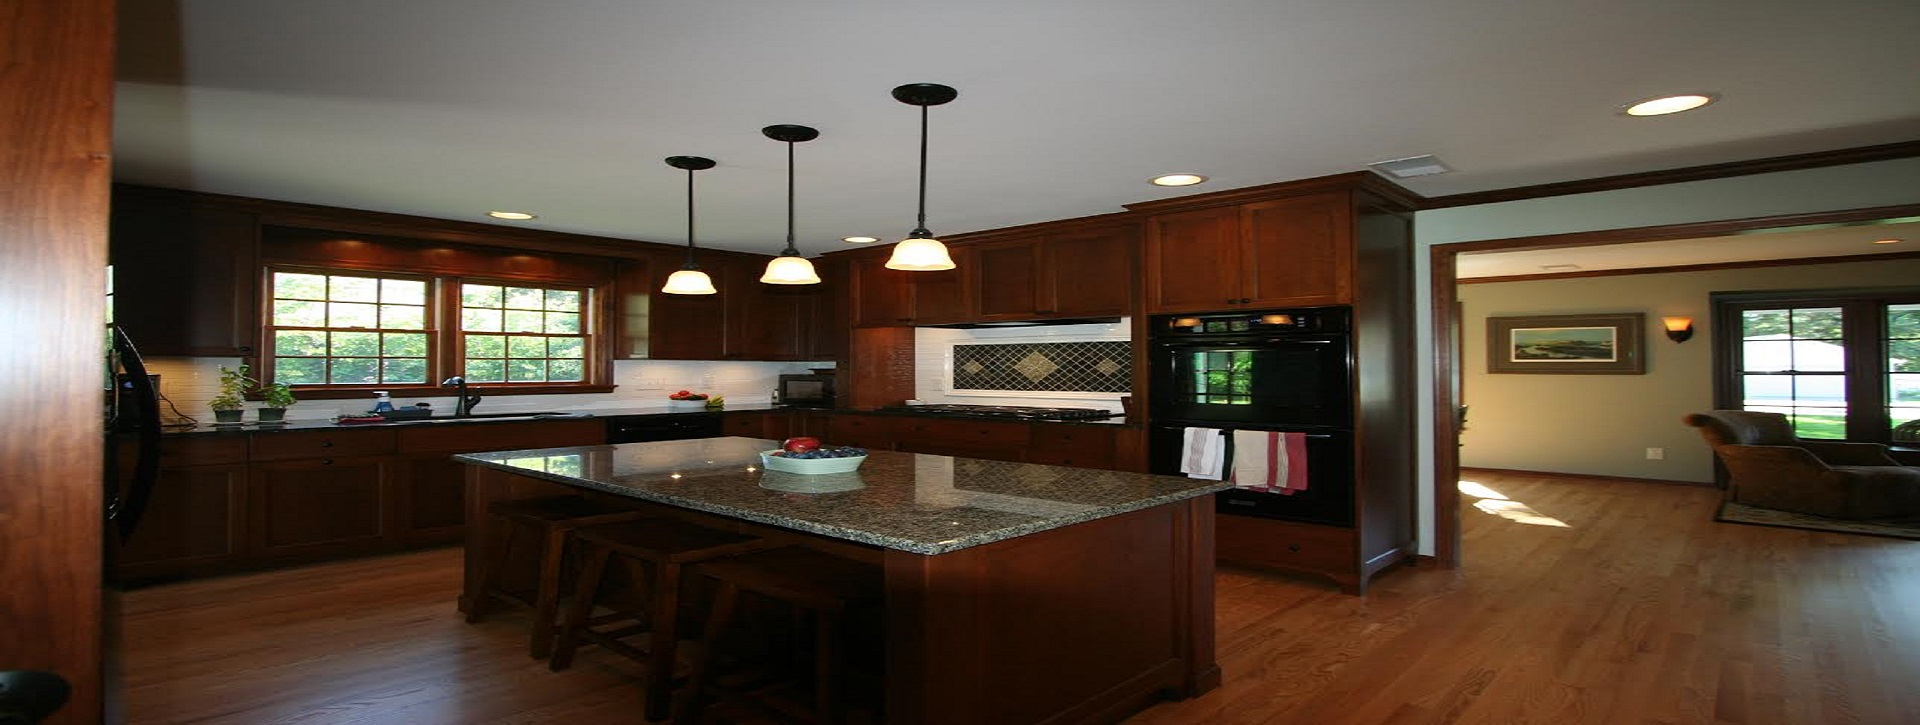 Good The #1 Choice For Custom Cabinets